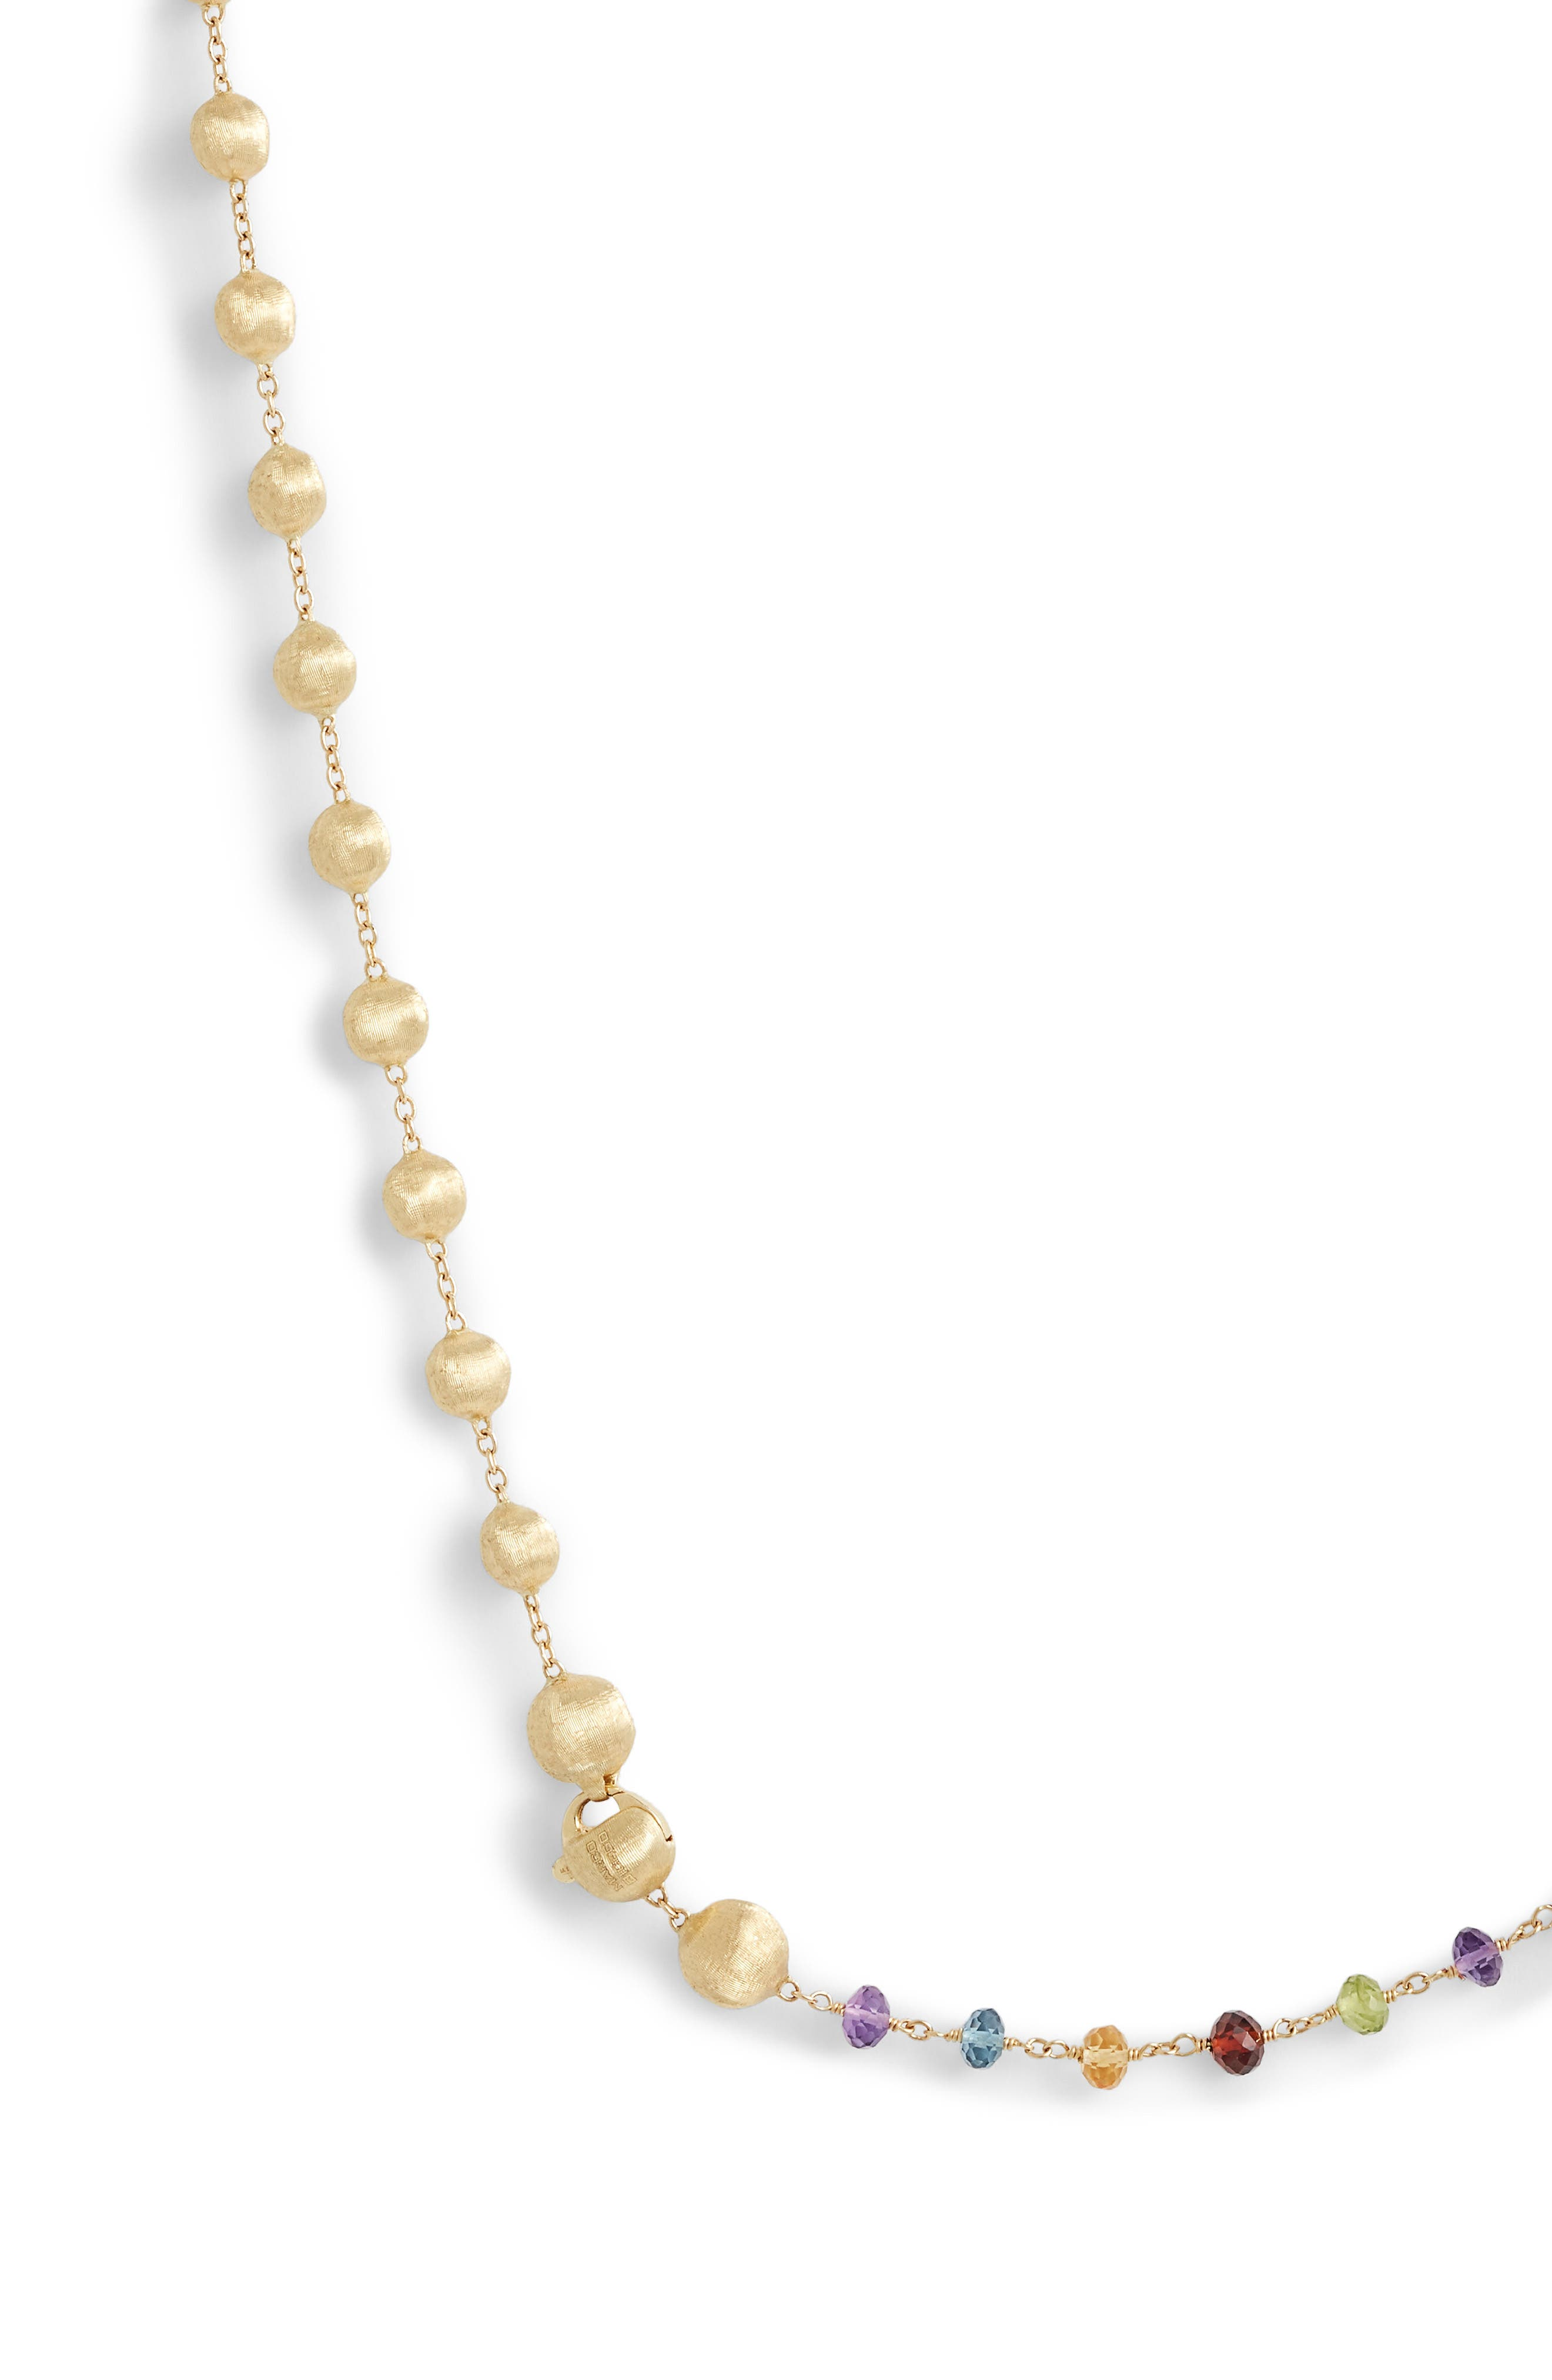 Africa Semiprecious Stone Long Strand Necklace,                             Alternate thumbnail 4, color,                             YELLOW GOLD